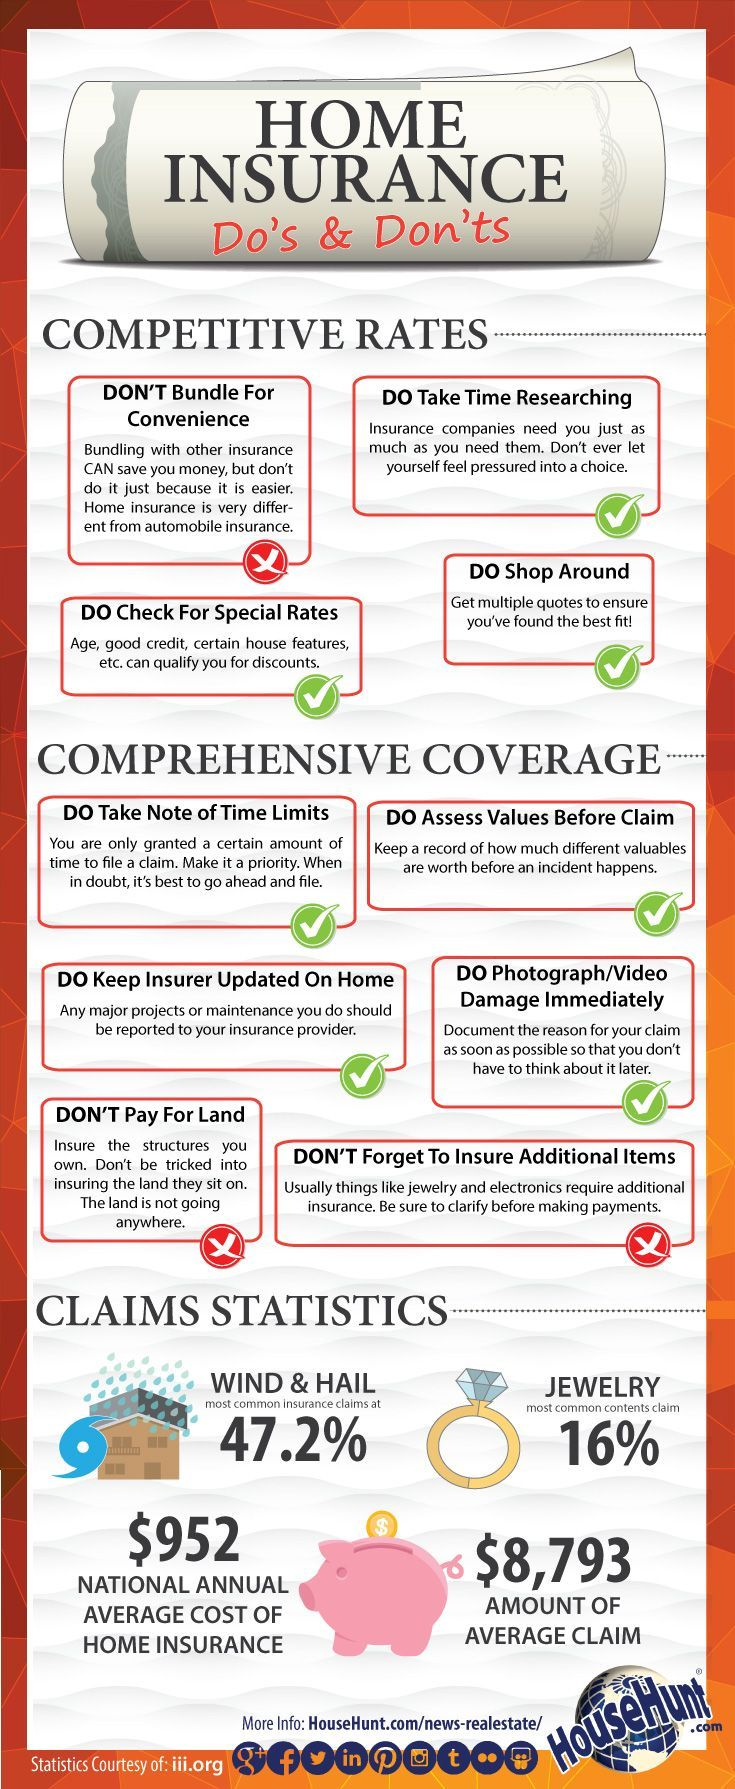 Here's your introduction to #HomeInsurance Do's and Don'ts. These tips will  ensure